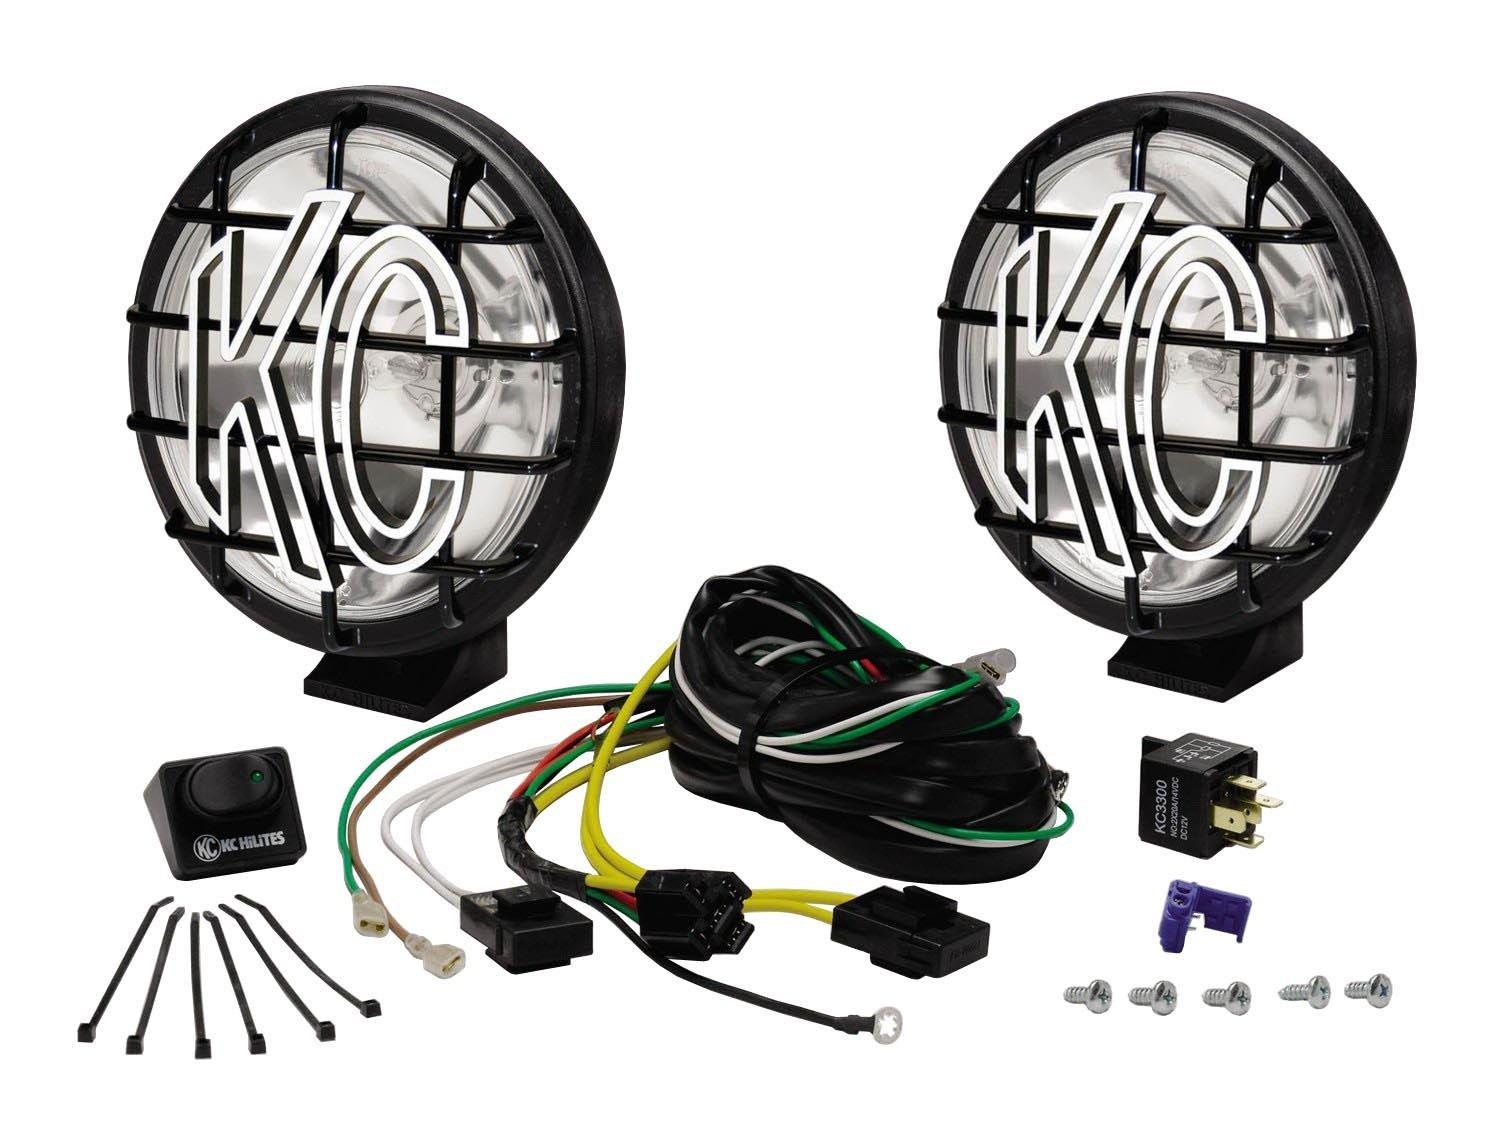 Amazon.com KC HiLiTES 150 Apollo Pro 6  100w Spot Beam Light System Automotive  sc 1 st  Amazon.com & Amazon.com: KC HiLiTES 150 Apollo Pro 6